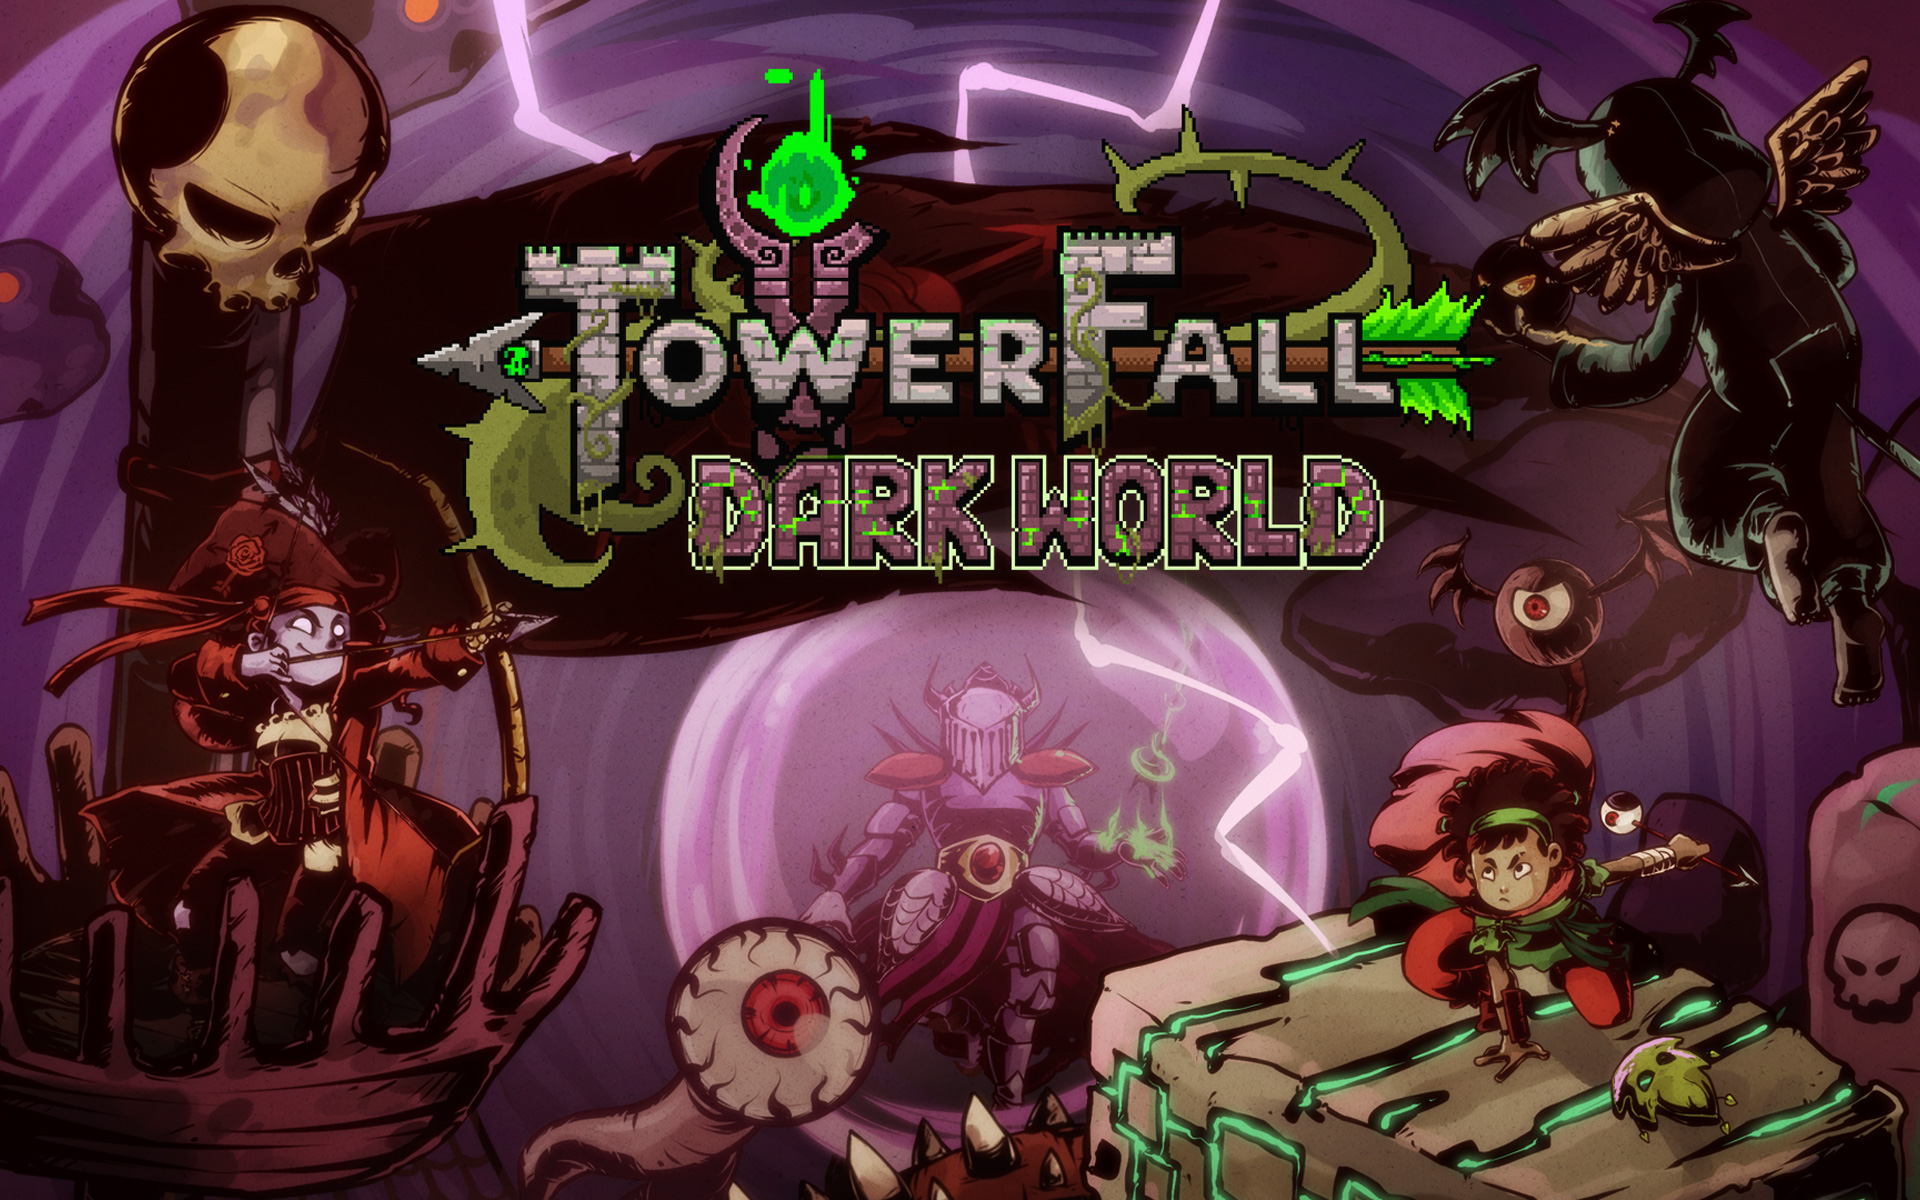 Free TowerFall Ascension Wallpaper in 1920x1200